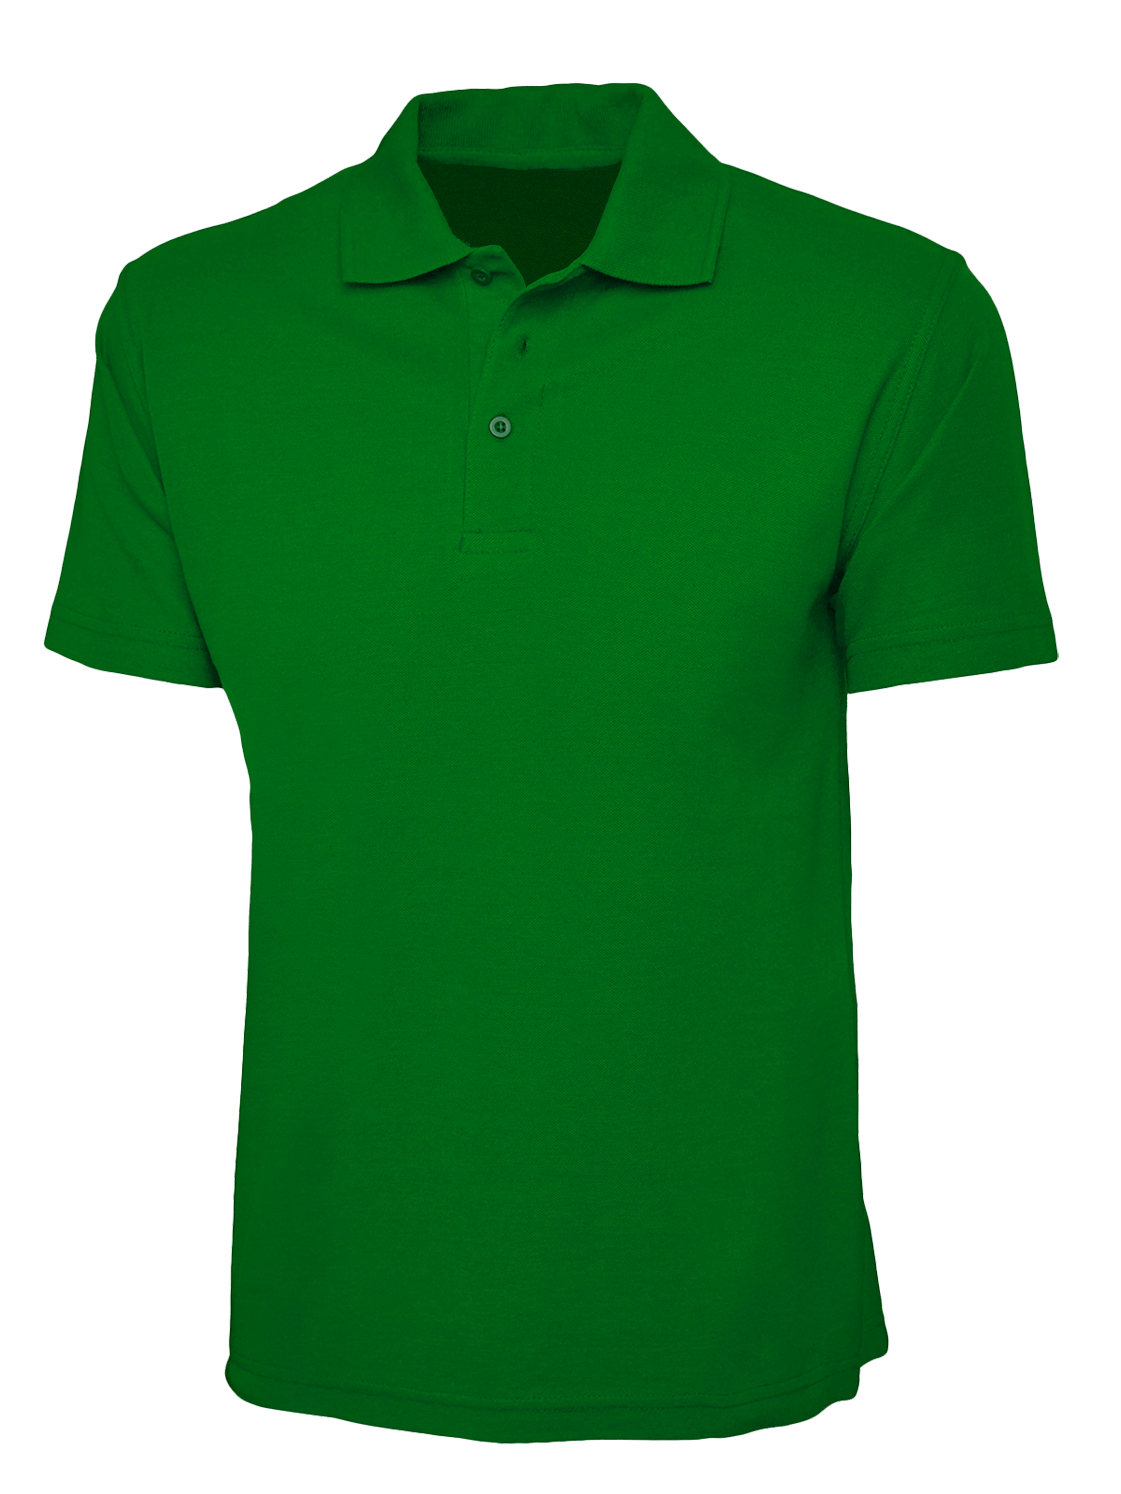 Plain Emerald Green Polo Shirt – Cutton Garments